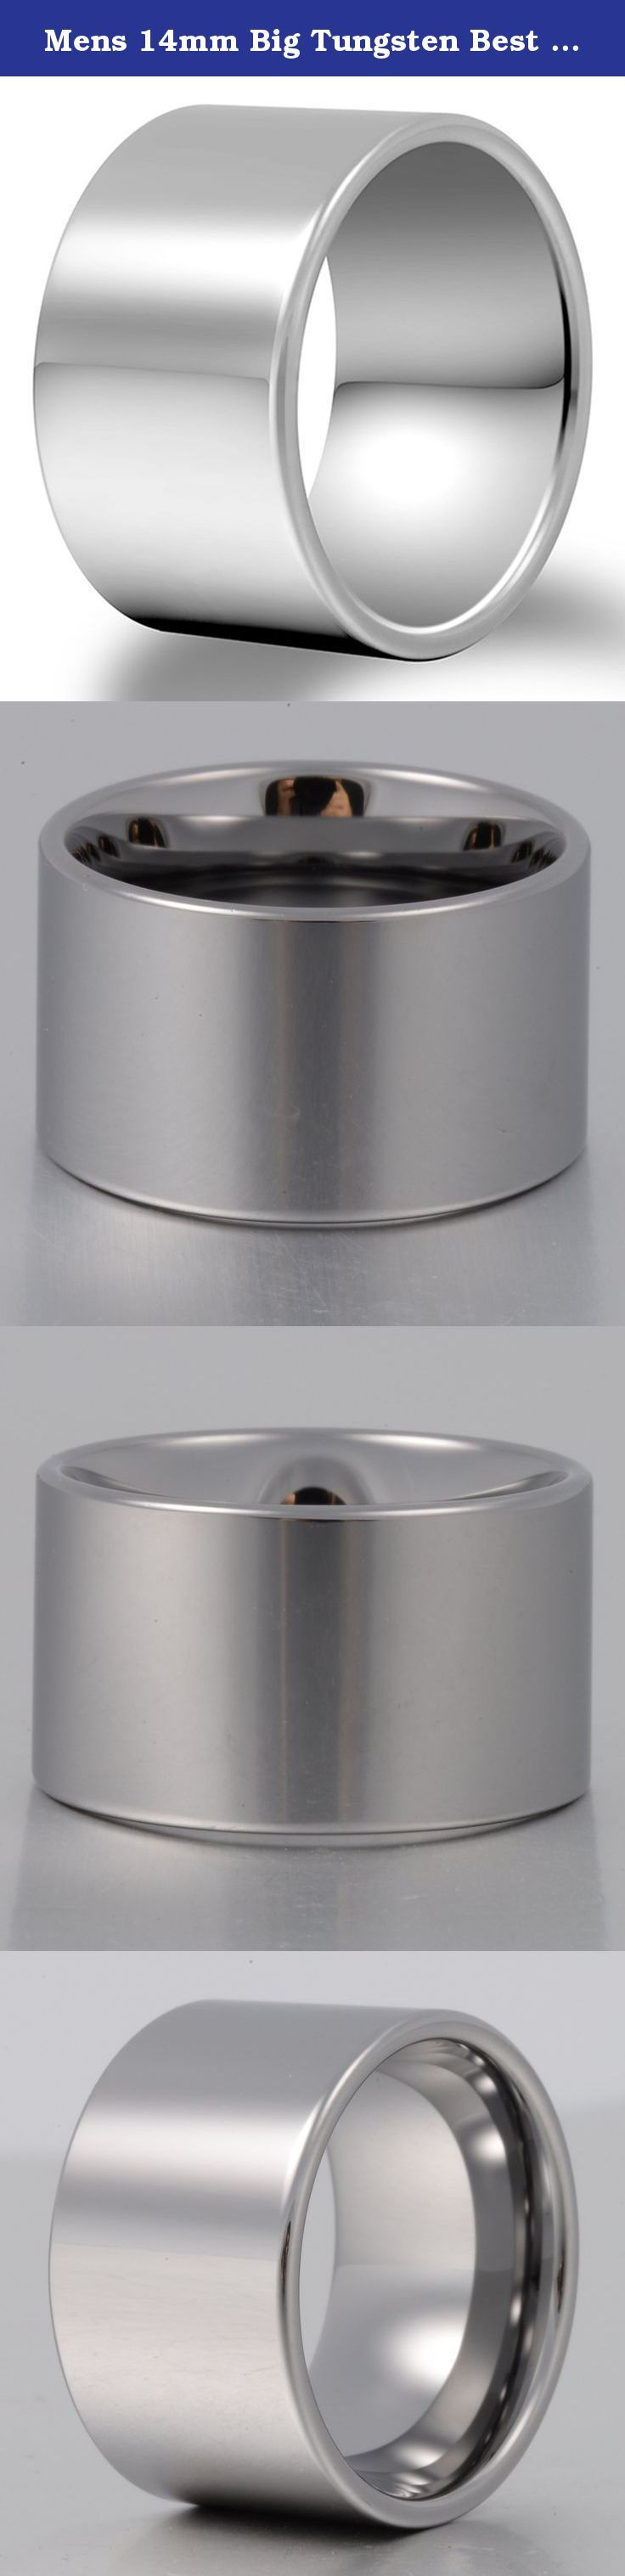 Mens 14mm Big Tungsten Best Metal Ring Classic Wedding Engagement Band High Polished Flat Top Comfort Fit Size 9.5. As a heavy metal, tungsten carbide is a very hard and dense with hardness between 8.5 and 9.5 on the hardness scale (Diamonds come to a 10). Its density allows tungsten to be used in jewelry as an alternative to gold or platinum. Tungsten carbide is about 10 times harder than 18k Gold, 4 times harder than titanium stainless steel, and it never fade, deform and always keep...